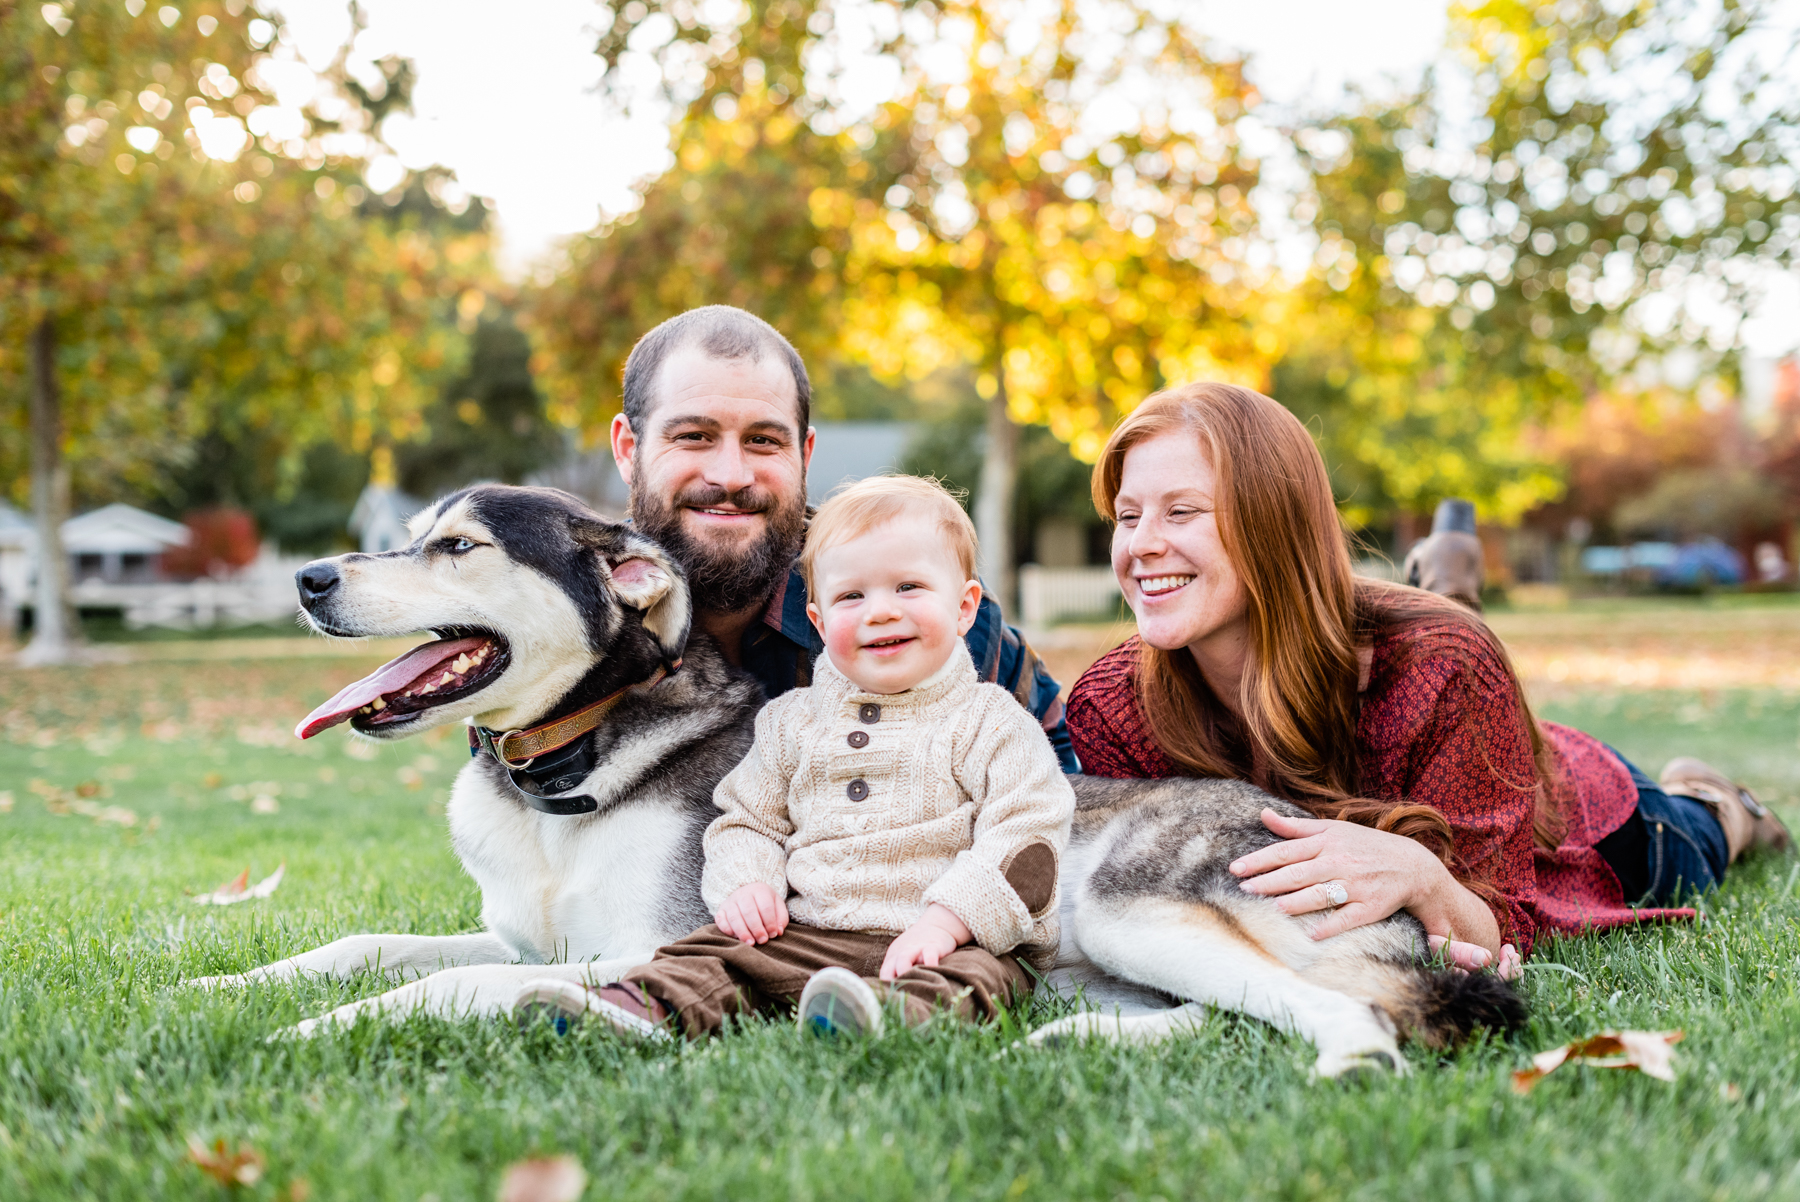 Their family portrait taken at Hap Magee Park in Danville, CA included their dog, Mojo.